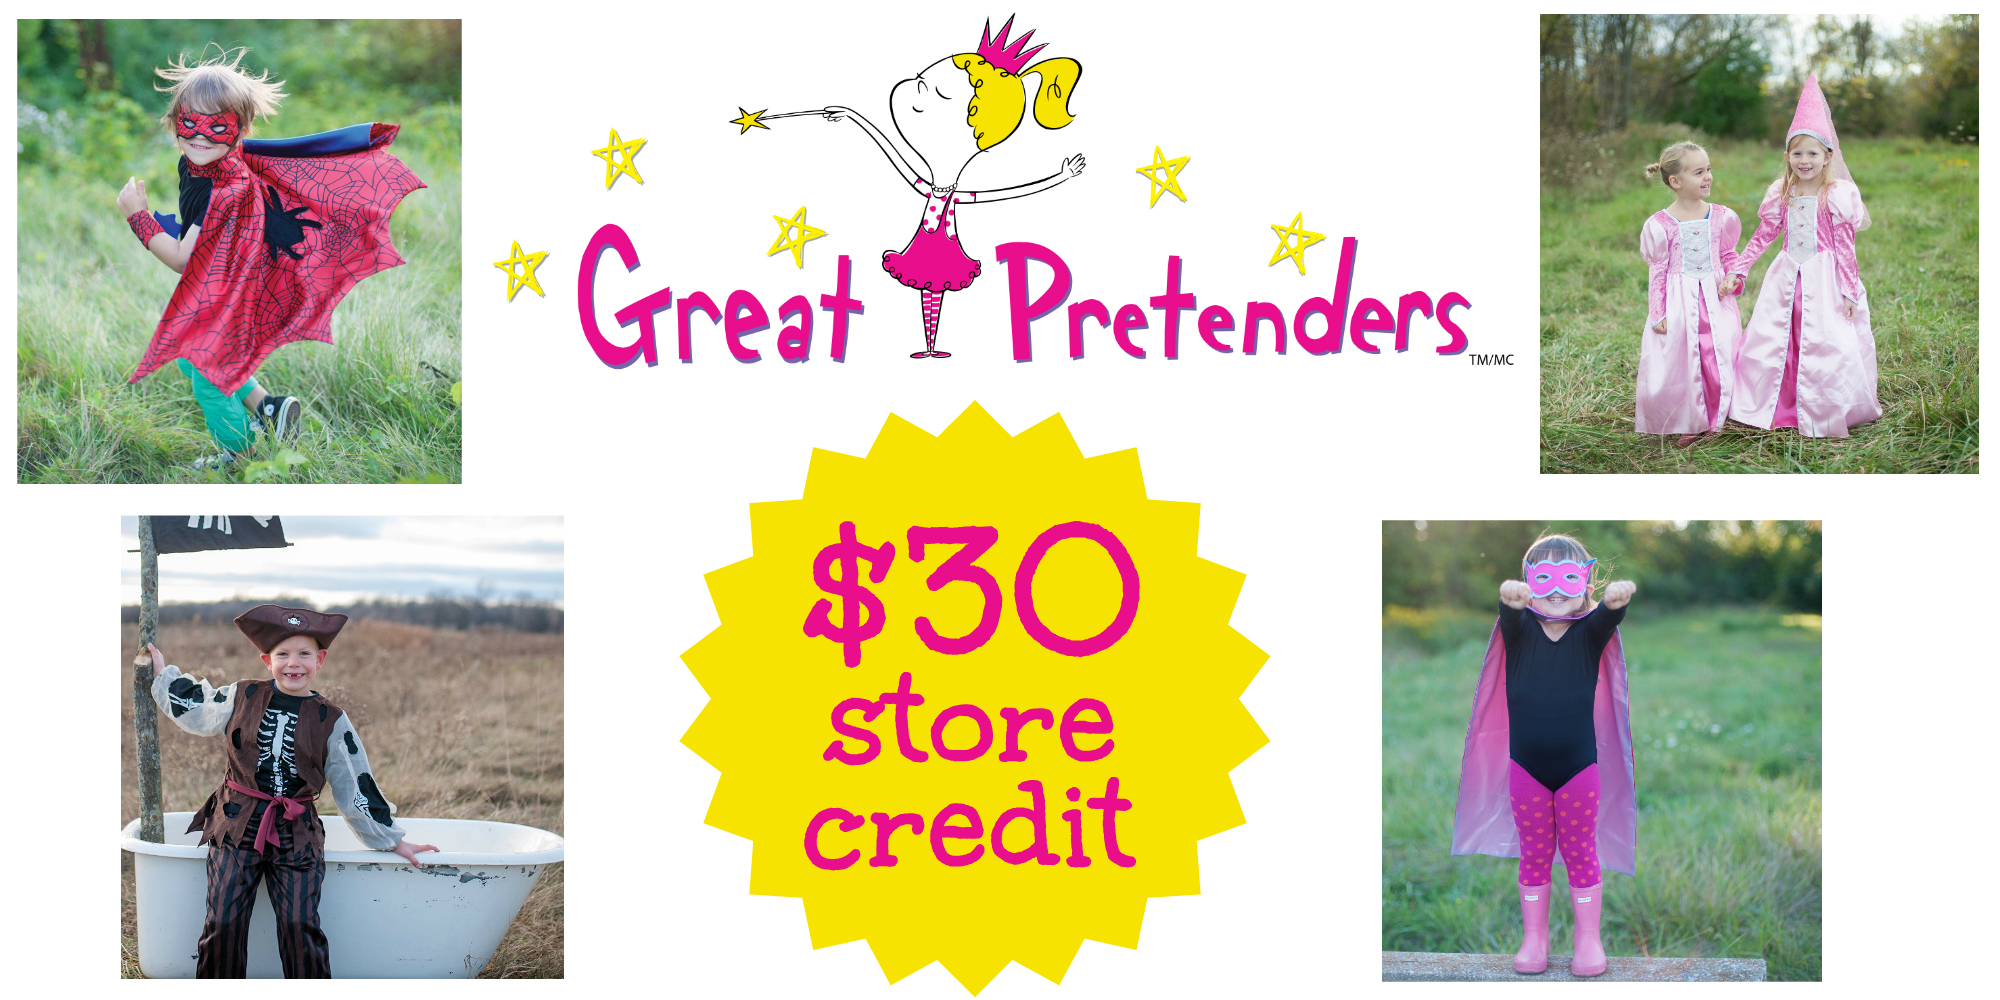 Great Pretenders in US Japan Fam's Unique Gift Guide & Giveaway